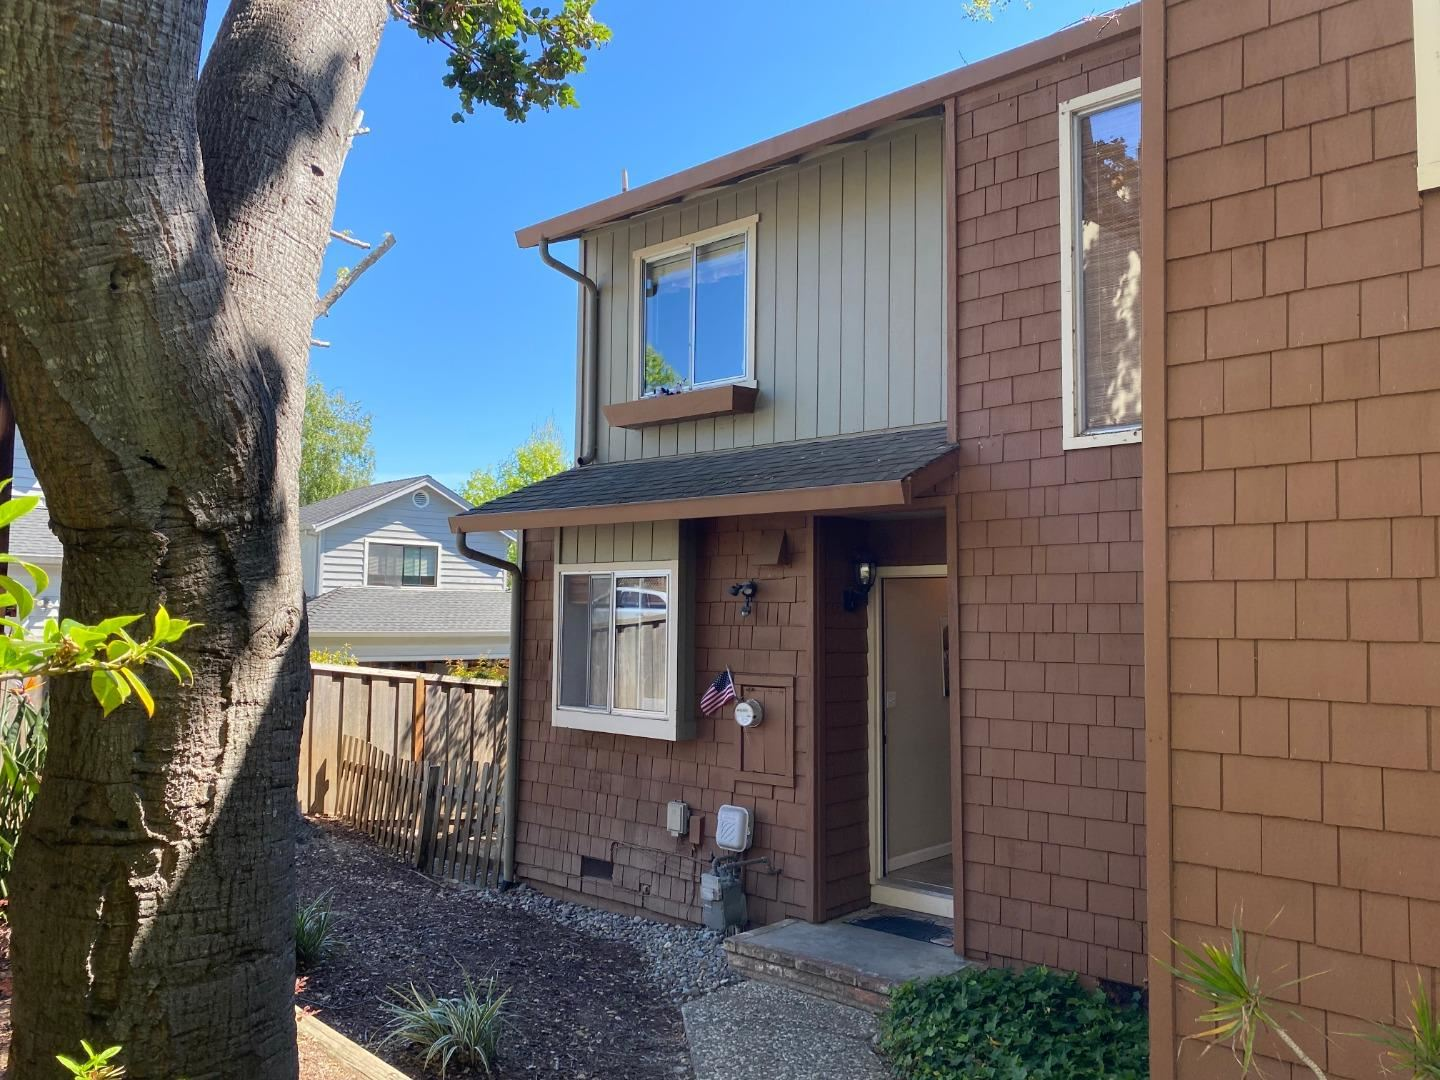 Photo for 113 Madeline DR 9 #9, APTOS, CA 95003 (MLS # ML81791568)